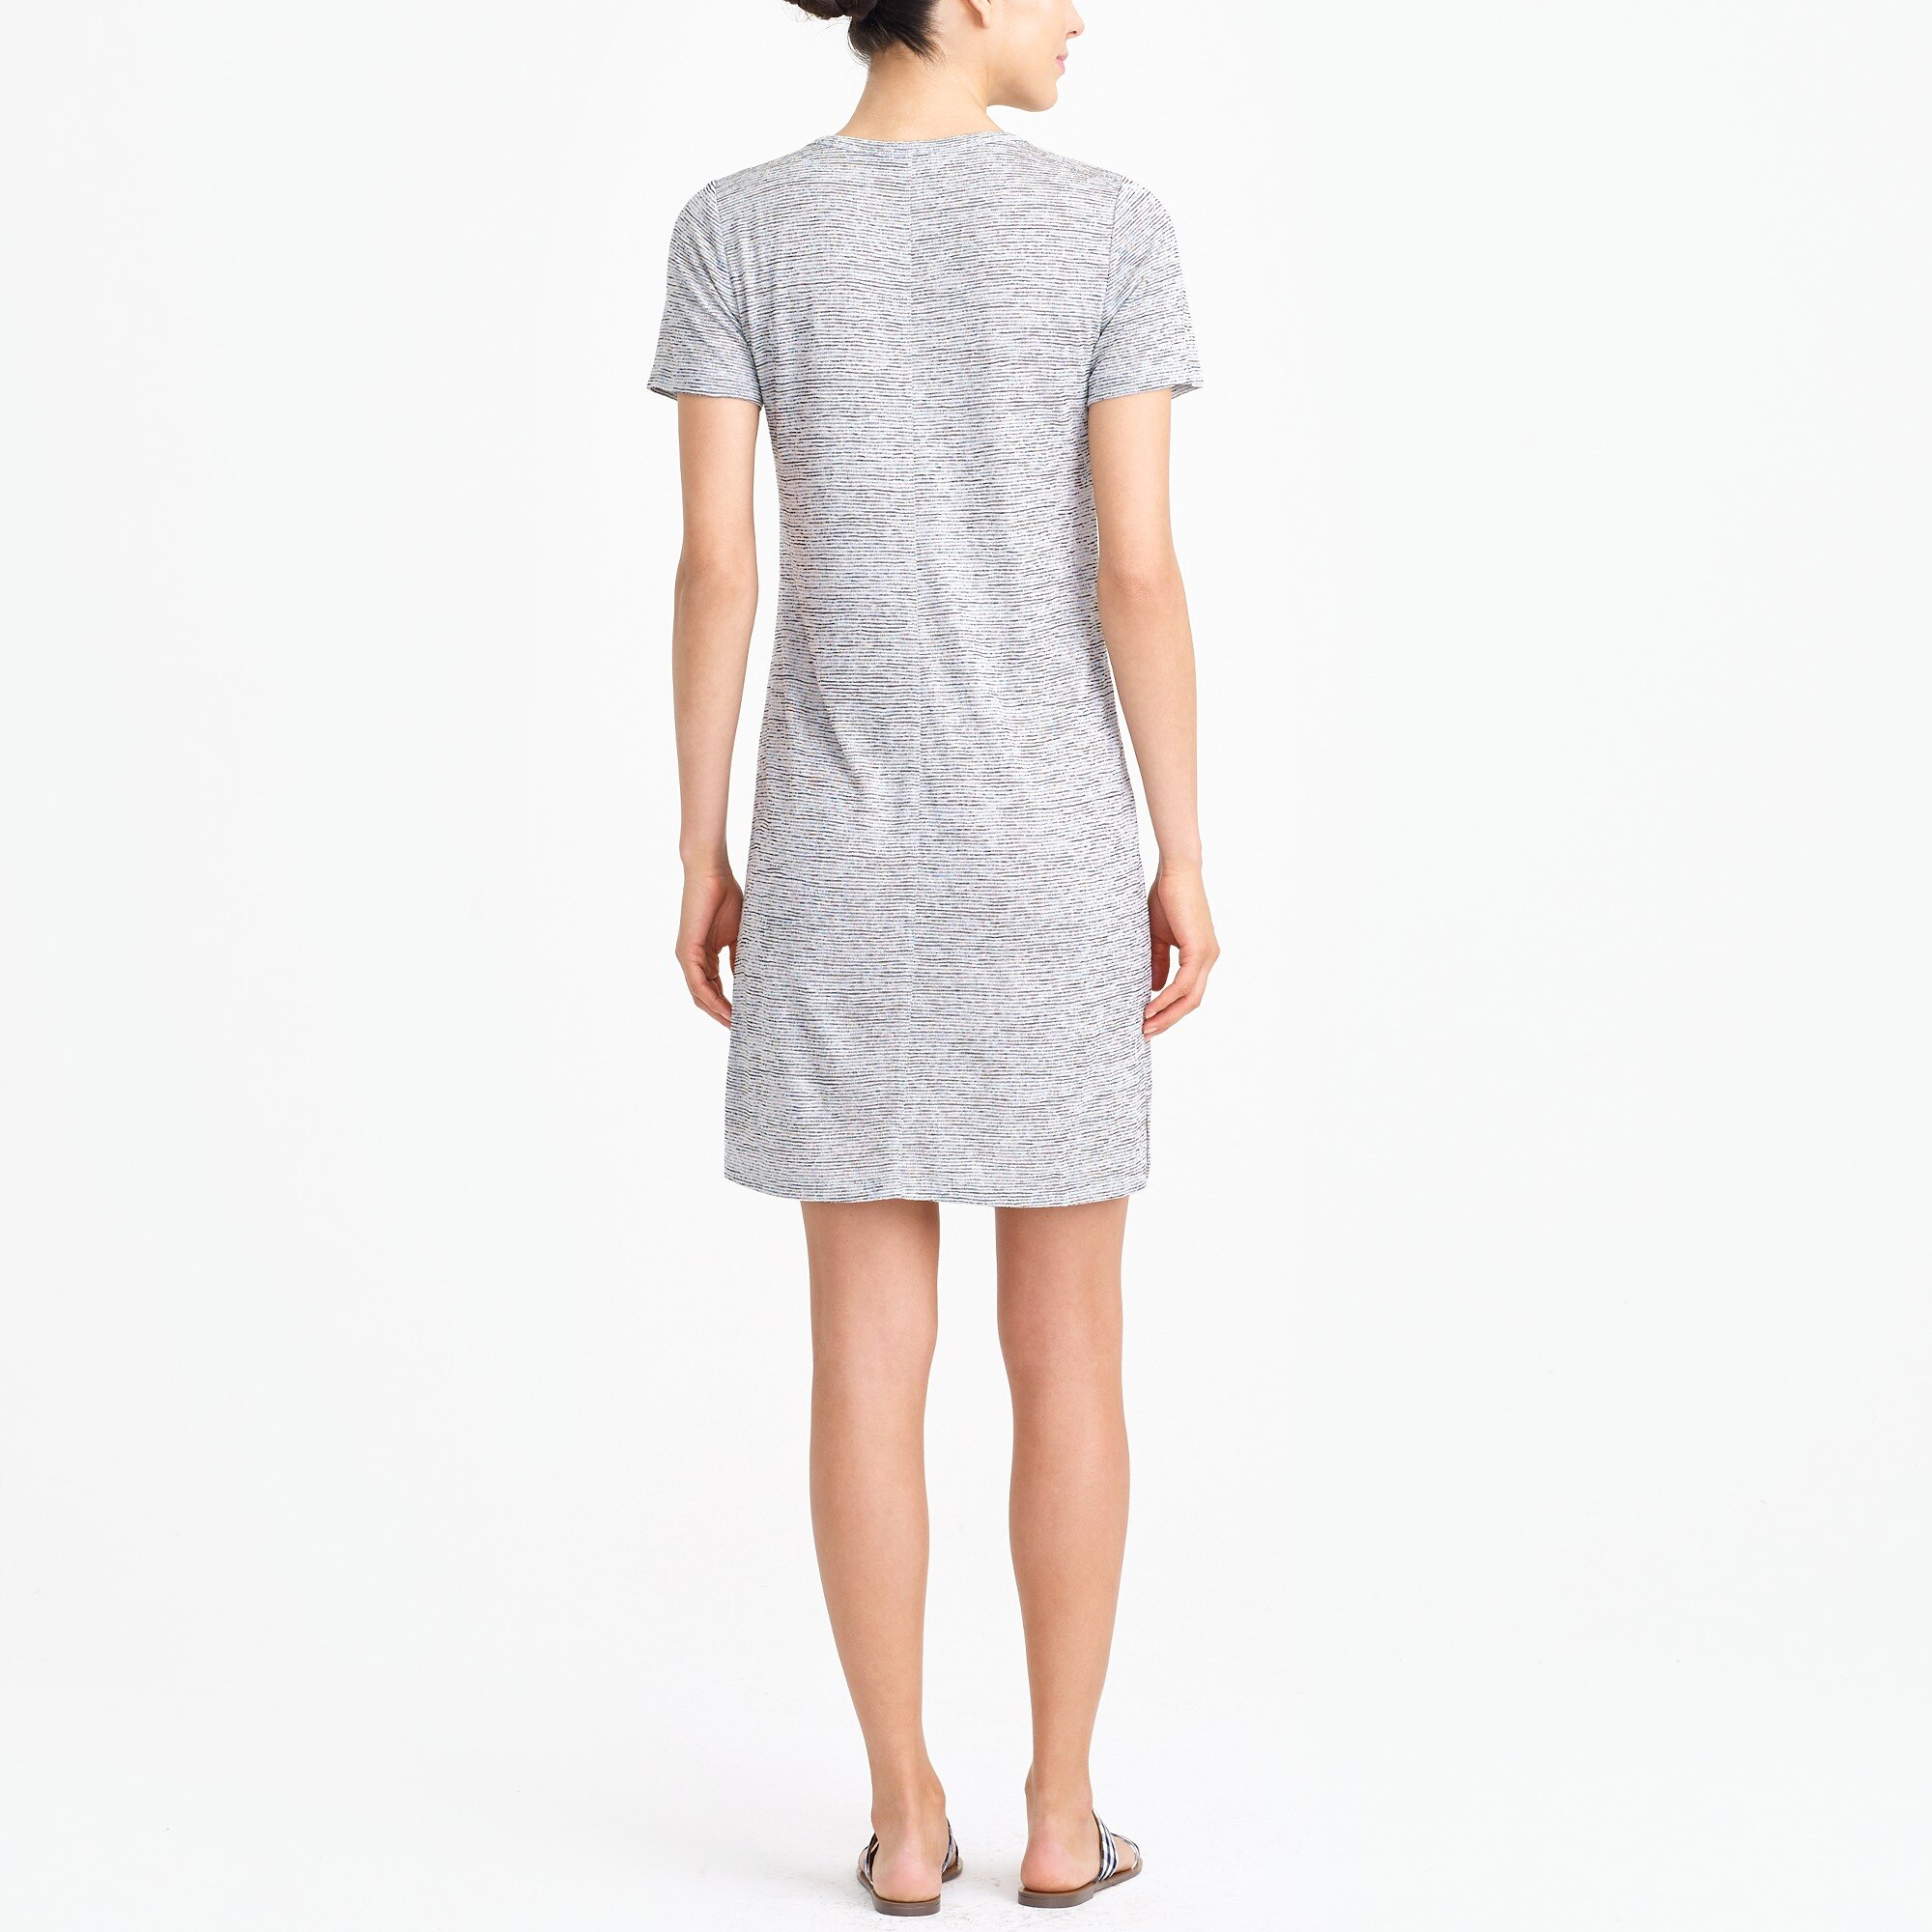 Image 3 for Short-sleeve pocket T-shirt dress